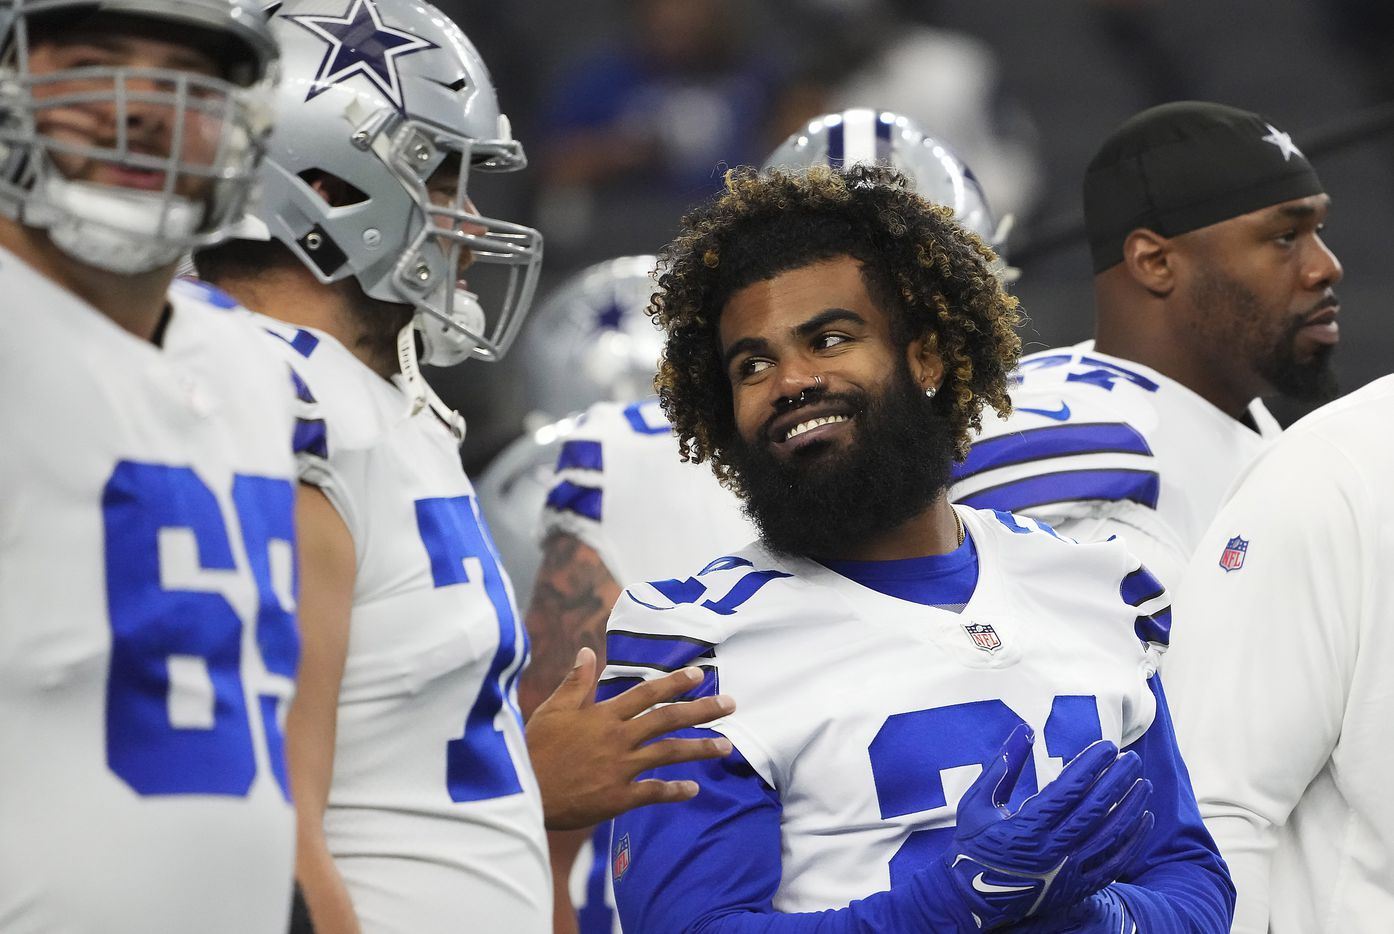 Dallas Cowboys running back Ezekiel Elliott (21) laughs with offensive guard Zack Martin (70) before a preseason NFL football game against the Jacksonville Jaguars at AT&T Stadium on Sunday, Aug. 29, 2021, in Arlington. (Smiley N. Pool/The Dallas Morning News)